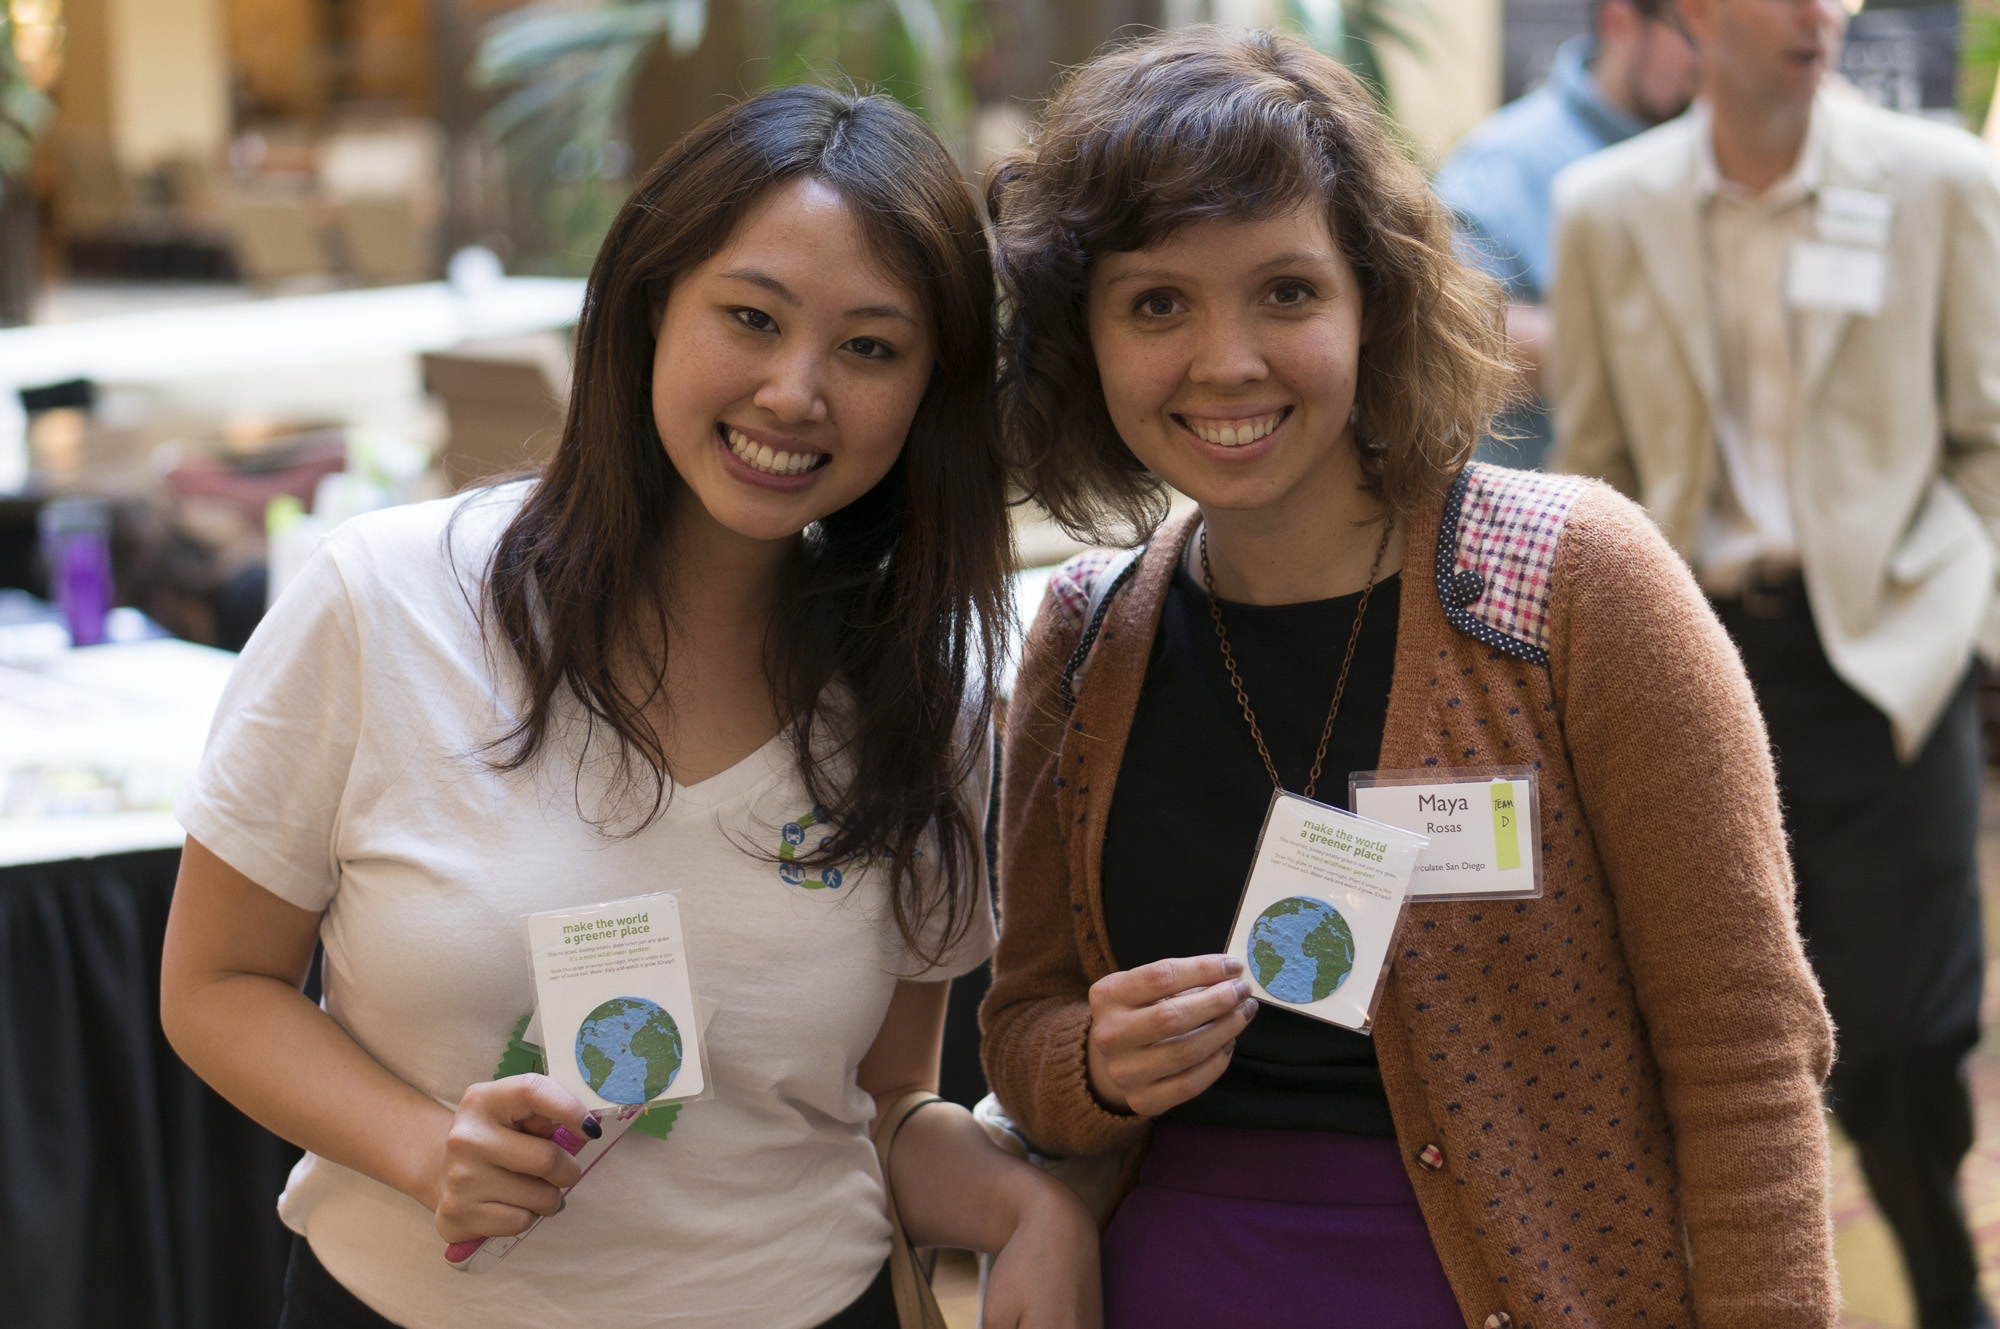 Image: 2 students attend the Transportation Equity Summit. Photo: Michael Halberstadt